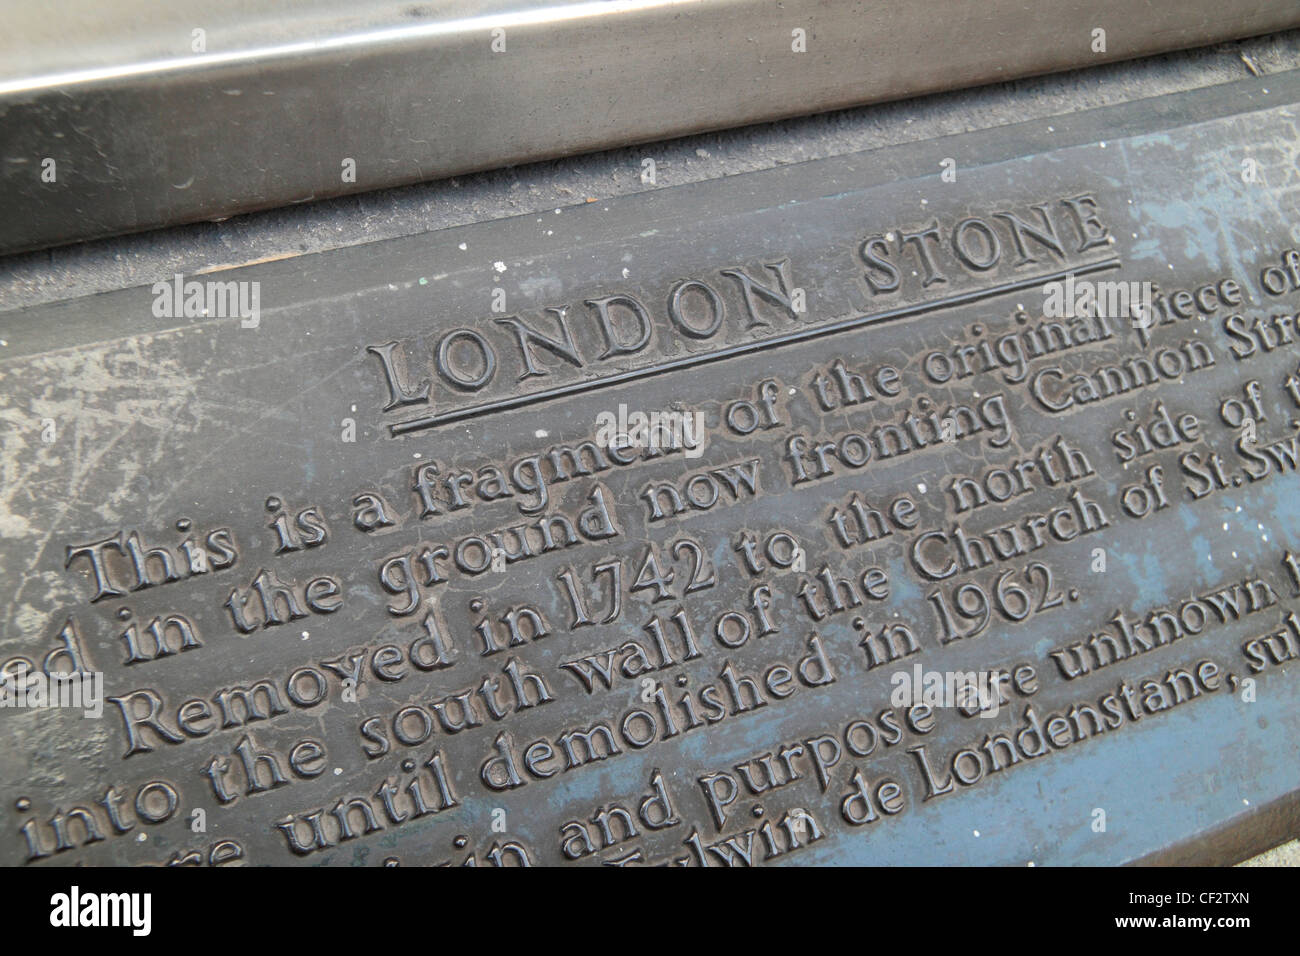 Information plaque above the London Stone, a historic stone hidden behind this iron grille on Cannon Street, London, - Stock Image